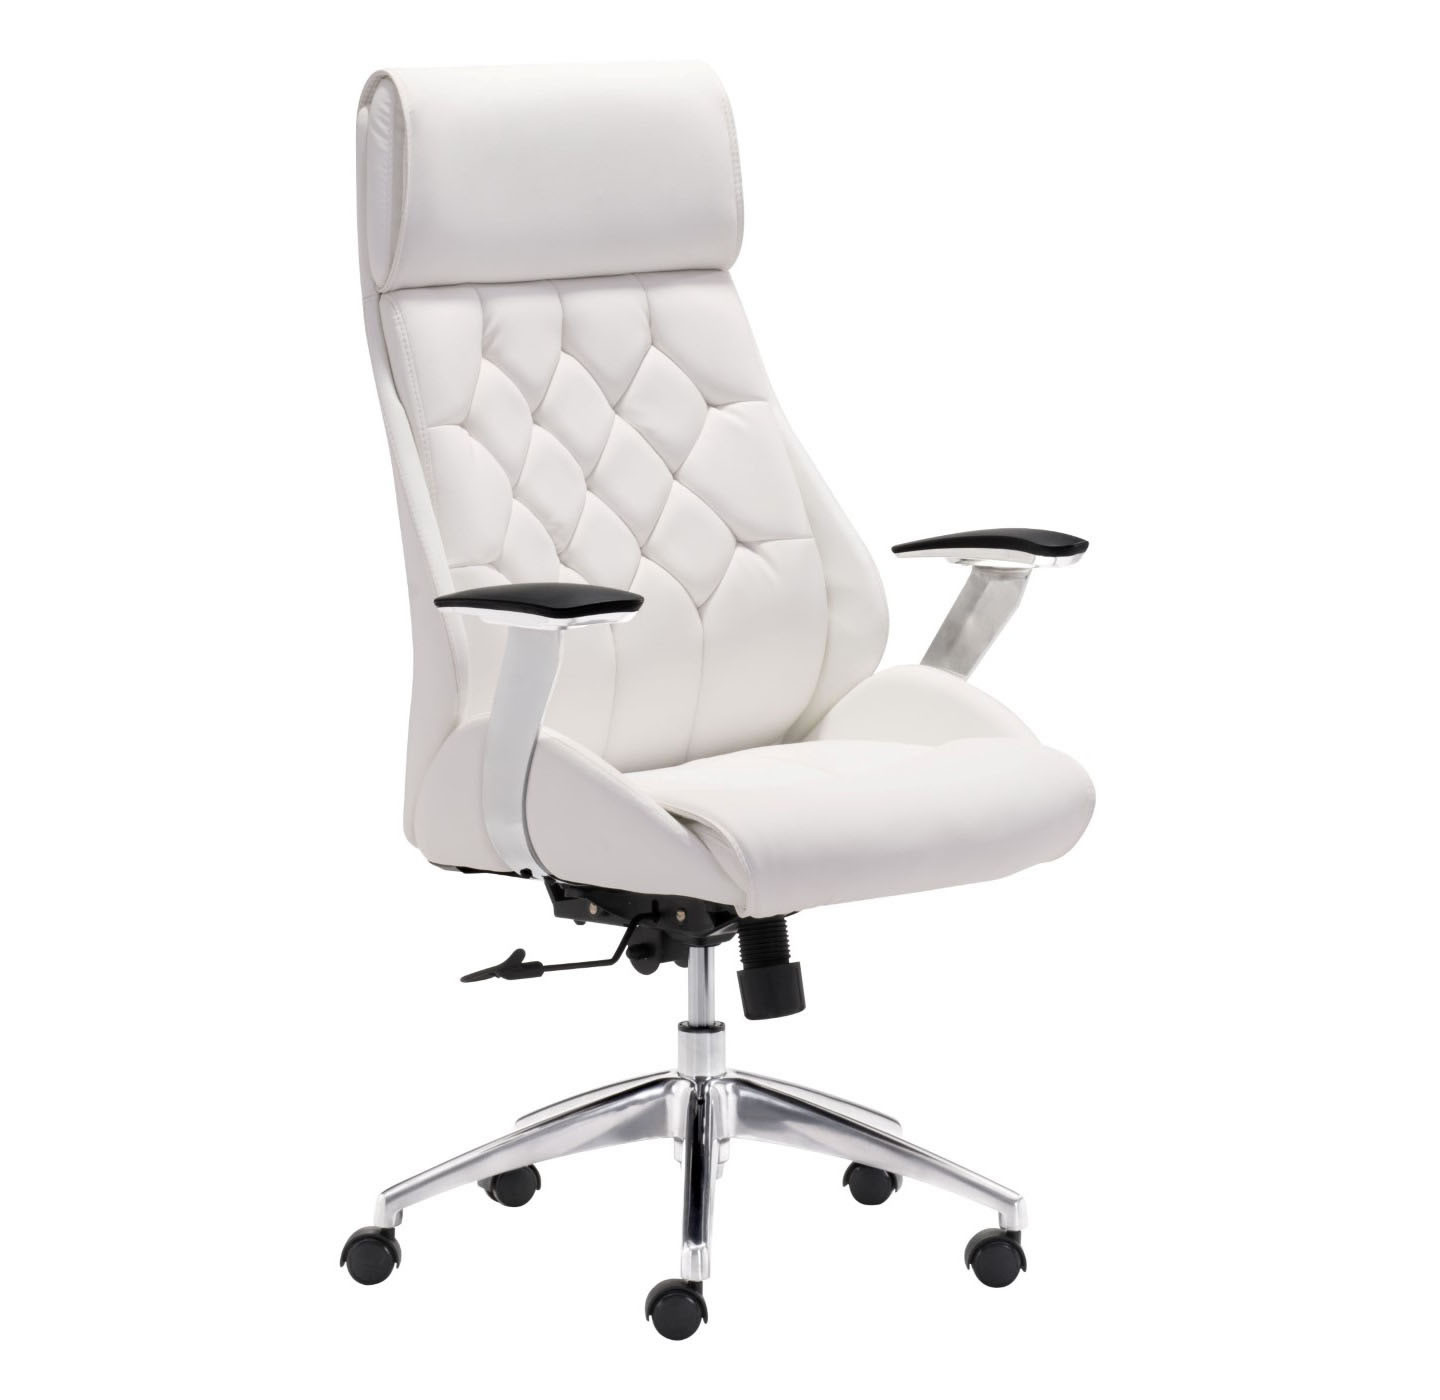 Best ideas about White Office Chair . Save or Pin Zuo Modern Boutique fice Chair White Now.